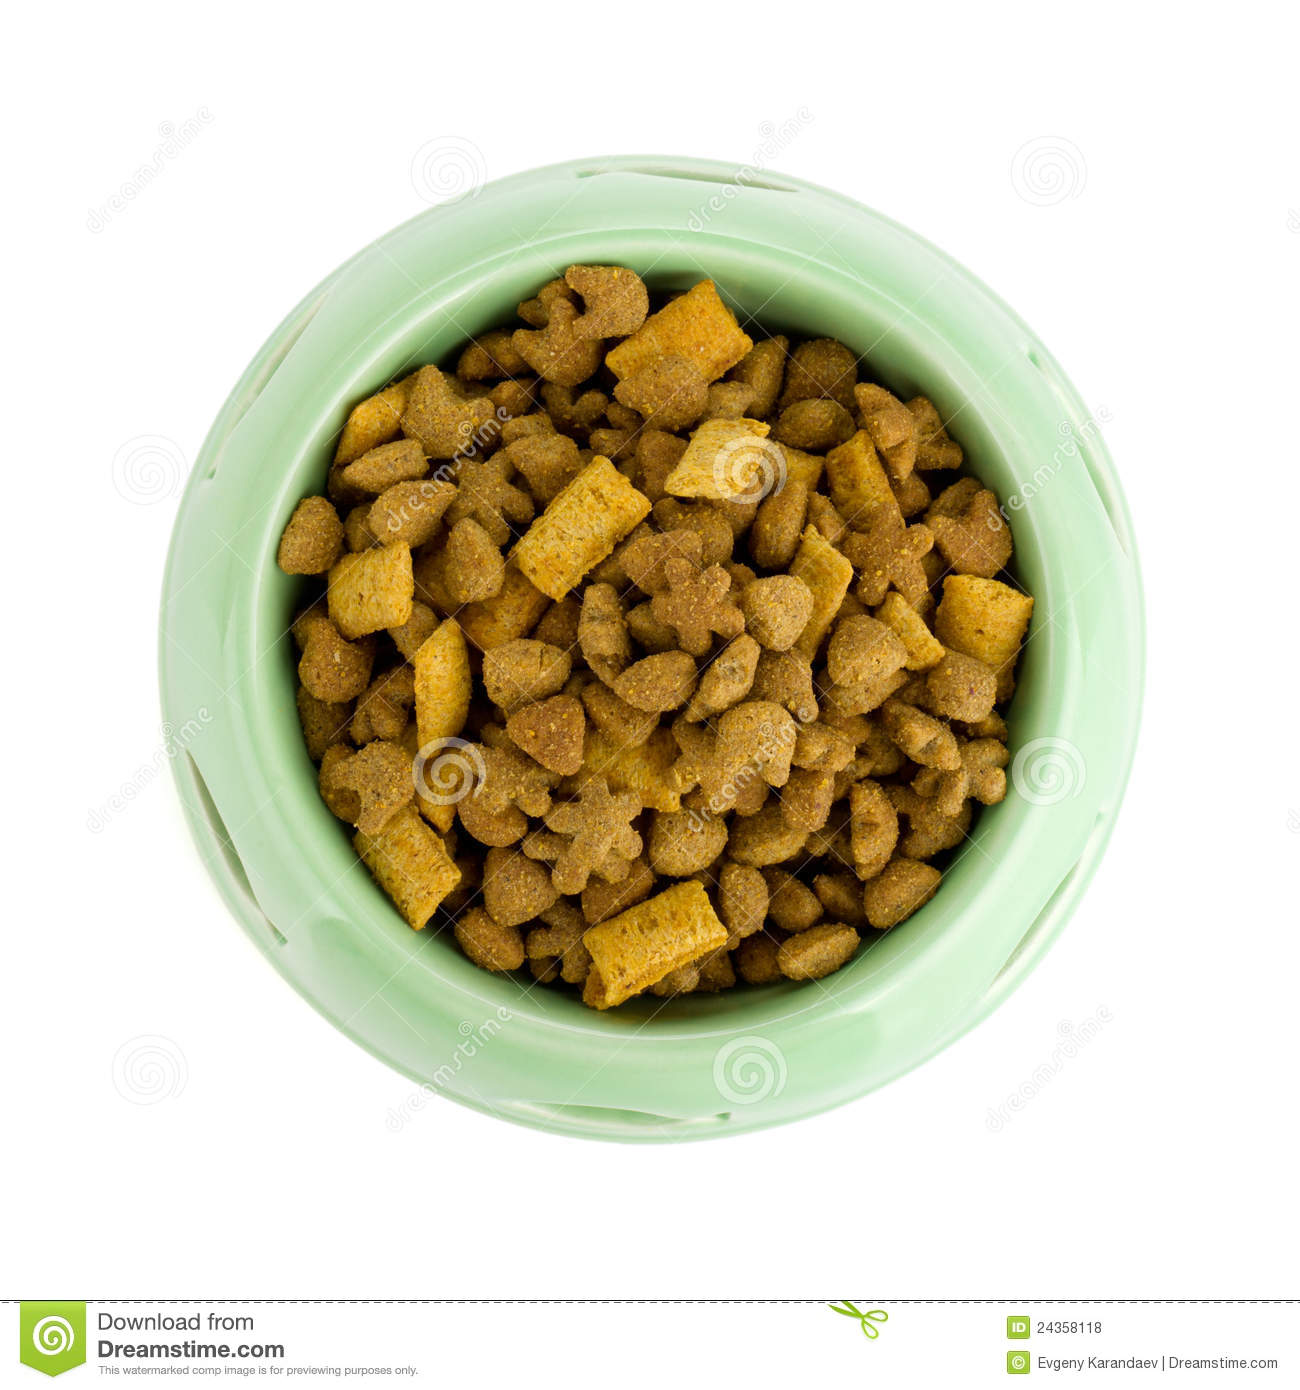 royaltyfree stock photo download cat food in a bowl